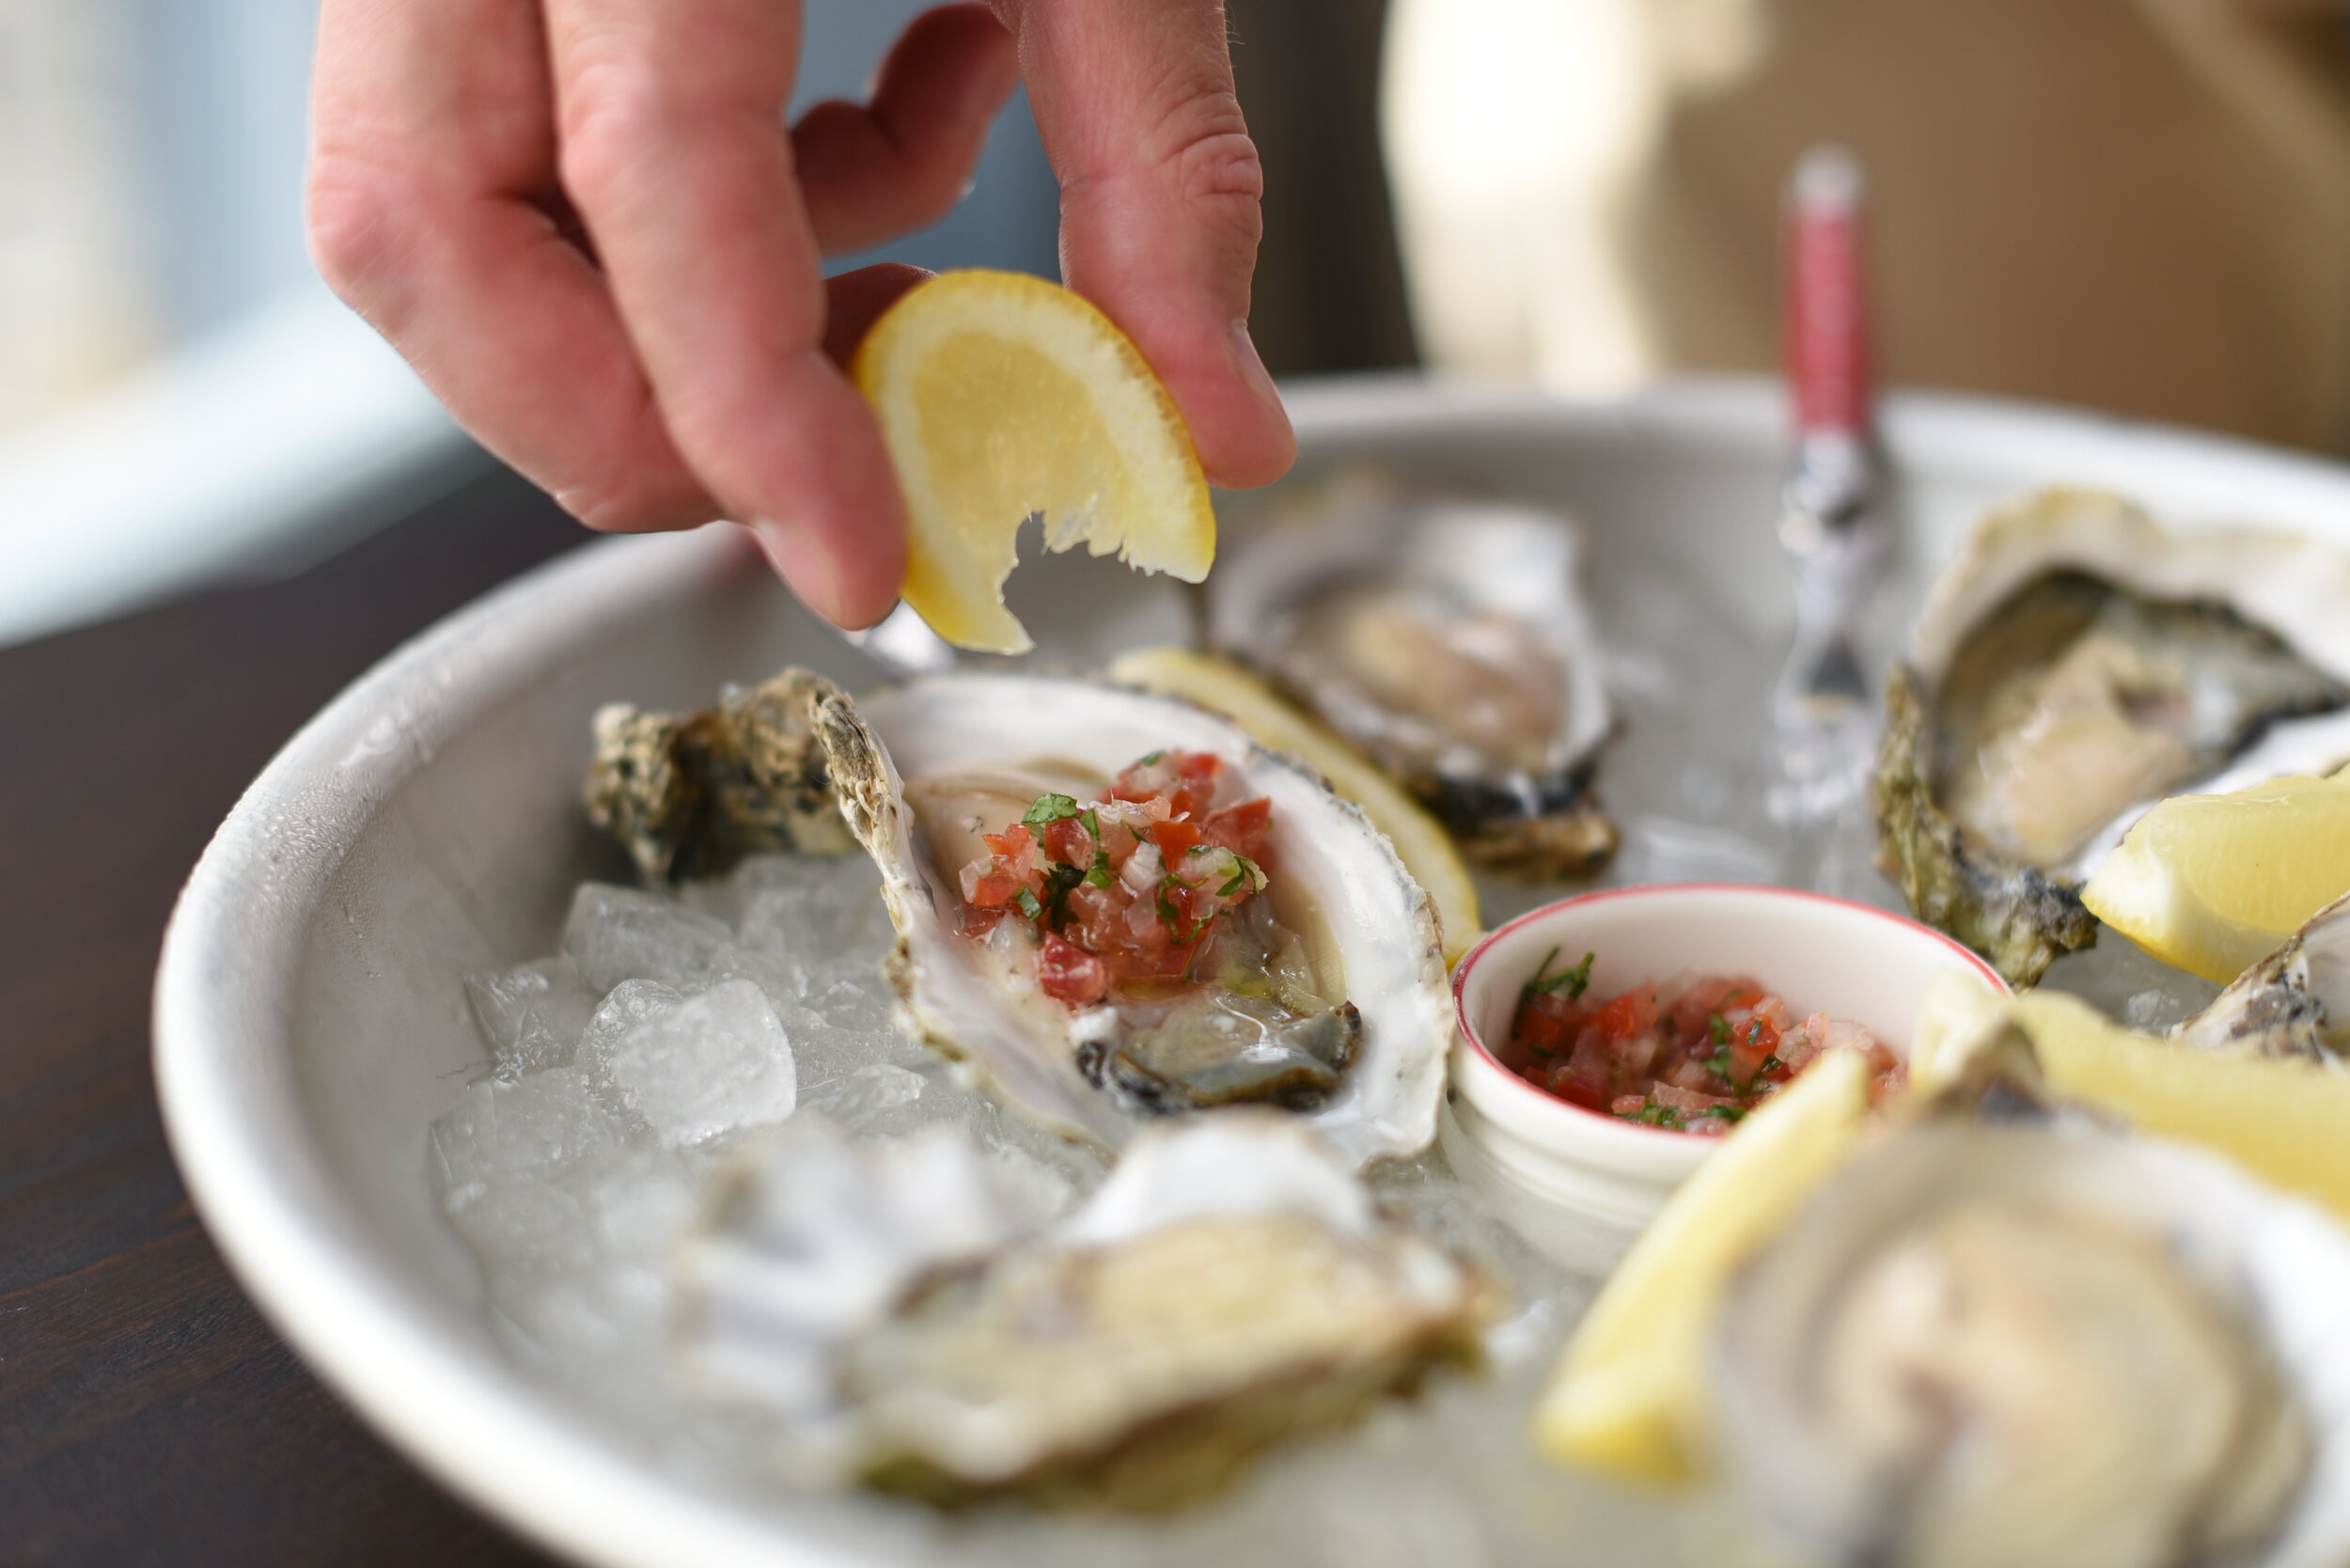 OYSTER HAPPY HOUR EVERY WEEKDAY FROM 4-6PM - £1 each with purchase of a glass or bottle of wine! As our American counterparts say